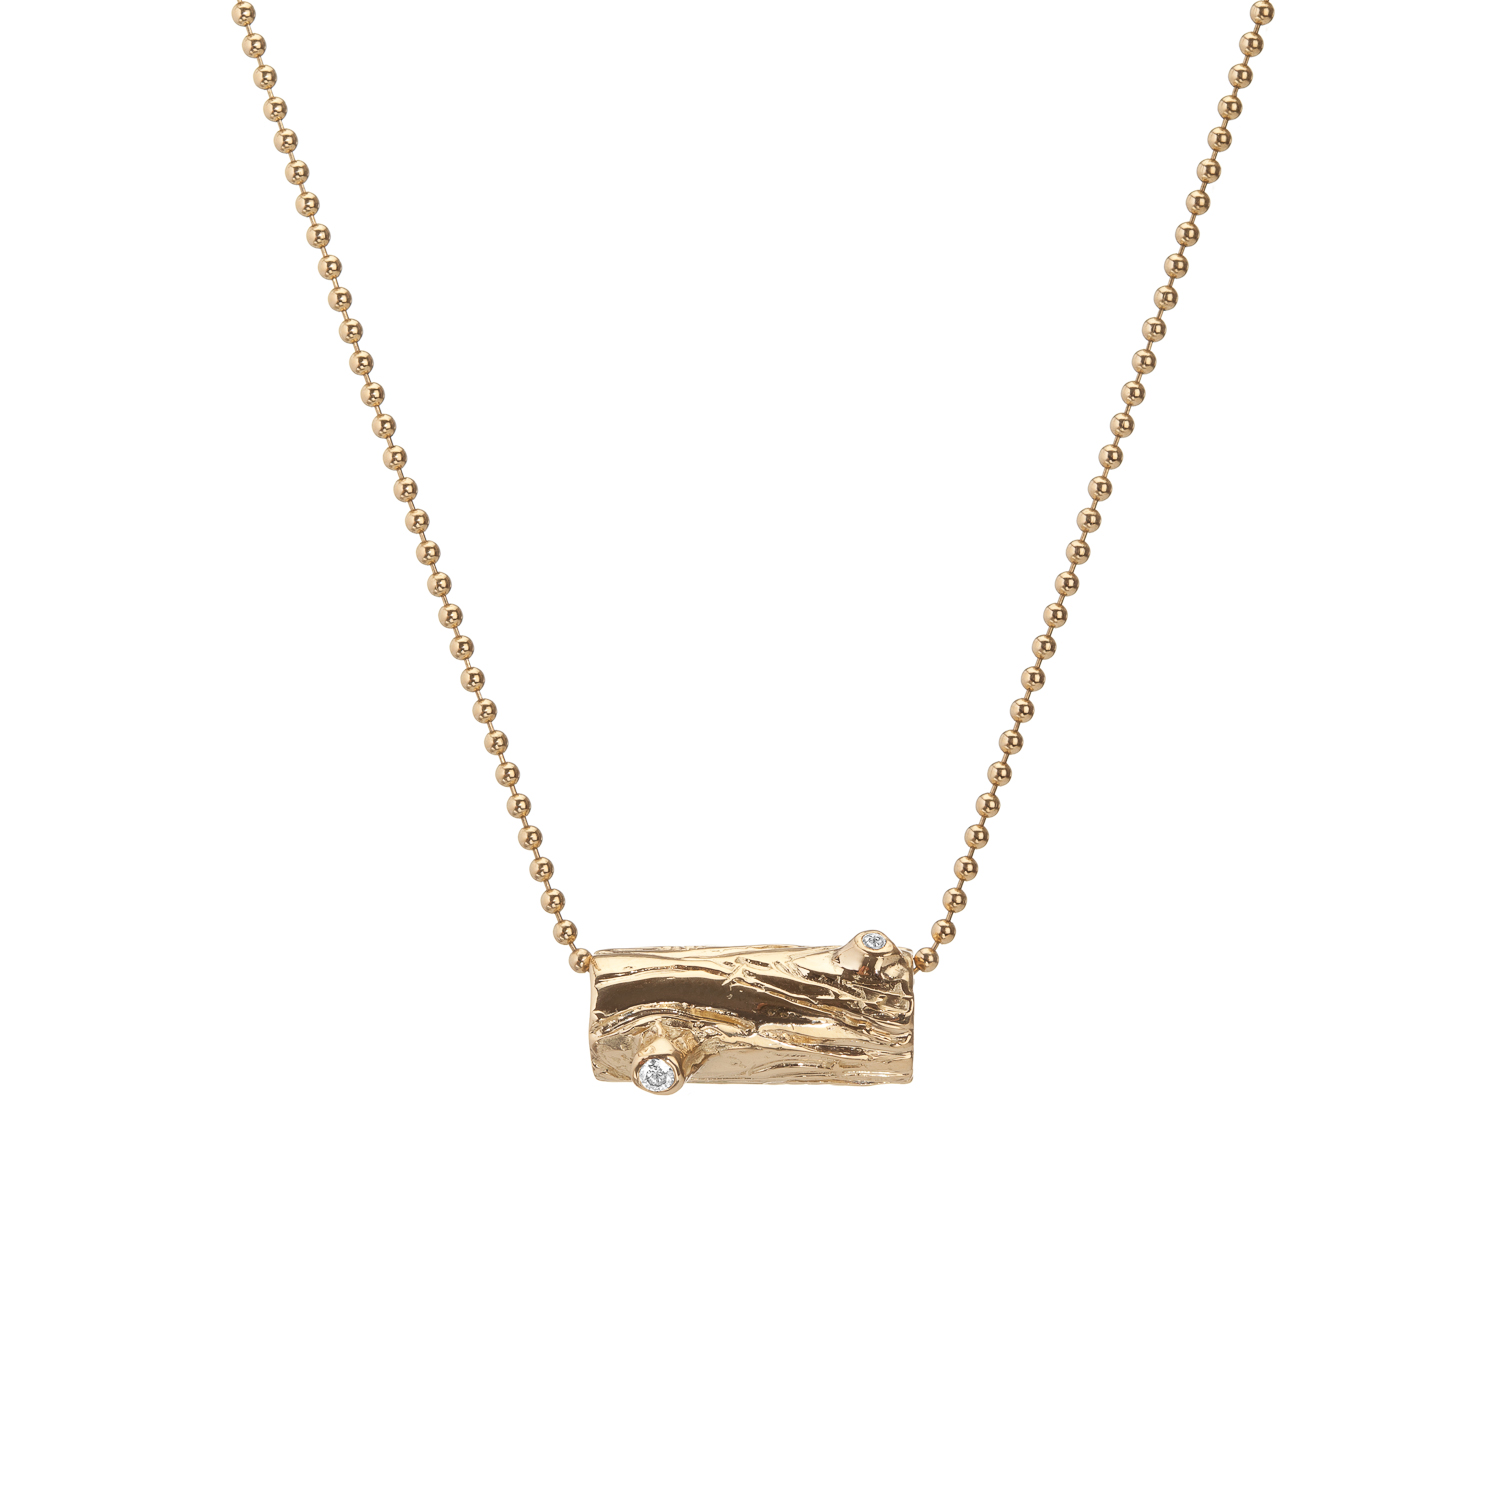 Log | 18k gold and white diamonds